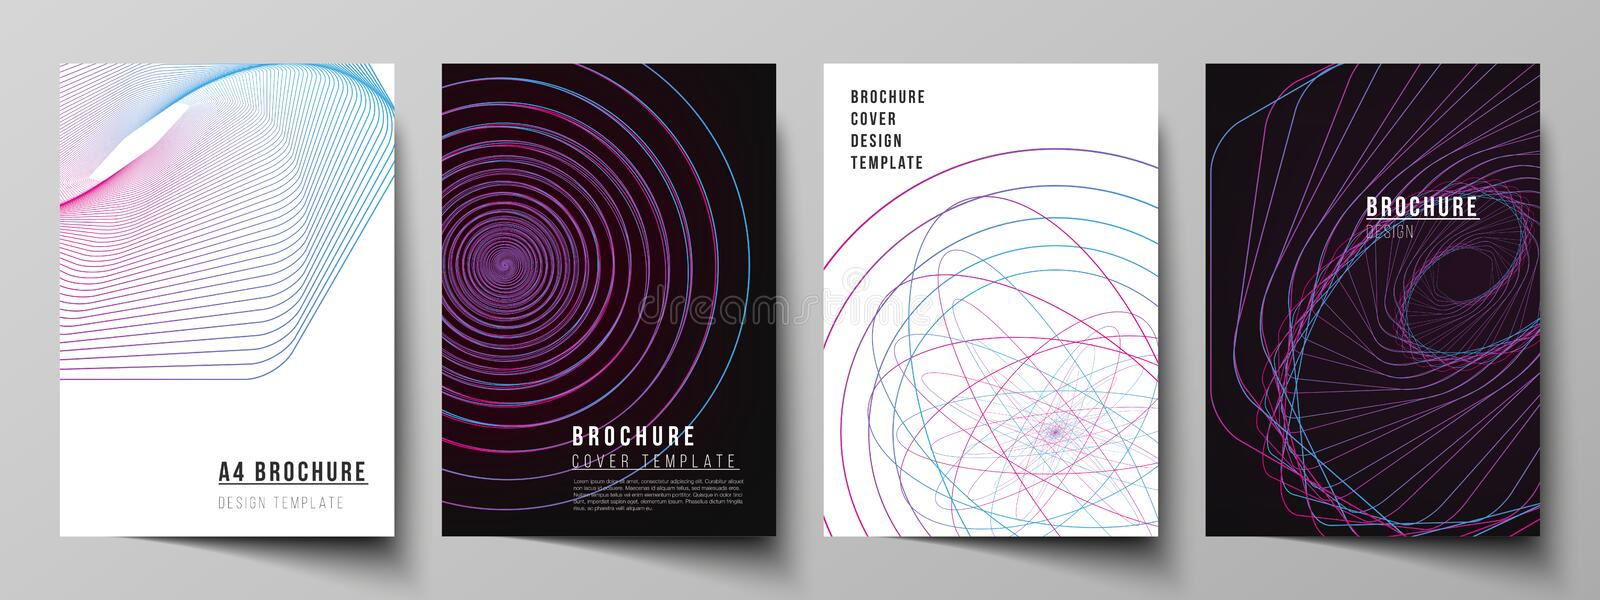 Vector layout of A4 format cover mockups design templates for brochure, flyer, booklet, report. Random chaotic lines. That creat real shapes. Chaos pattern stock illustration